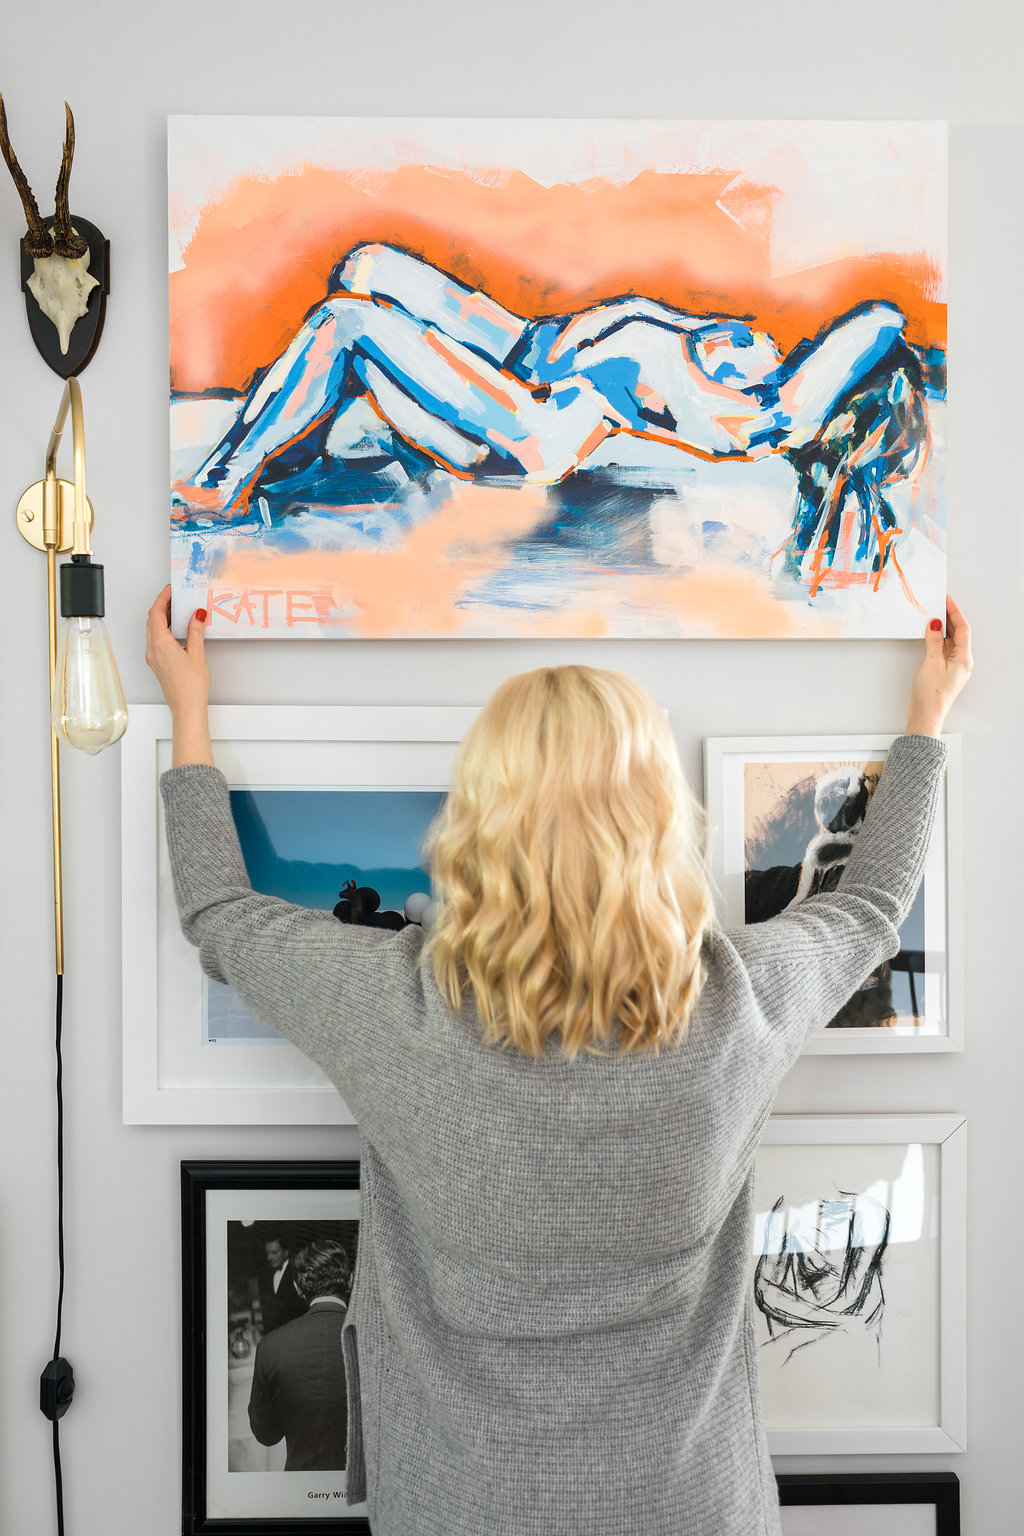 How To Hang A Gallery Wallin 5 Easy Steps, Waiting On Martha